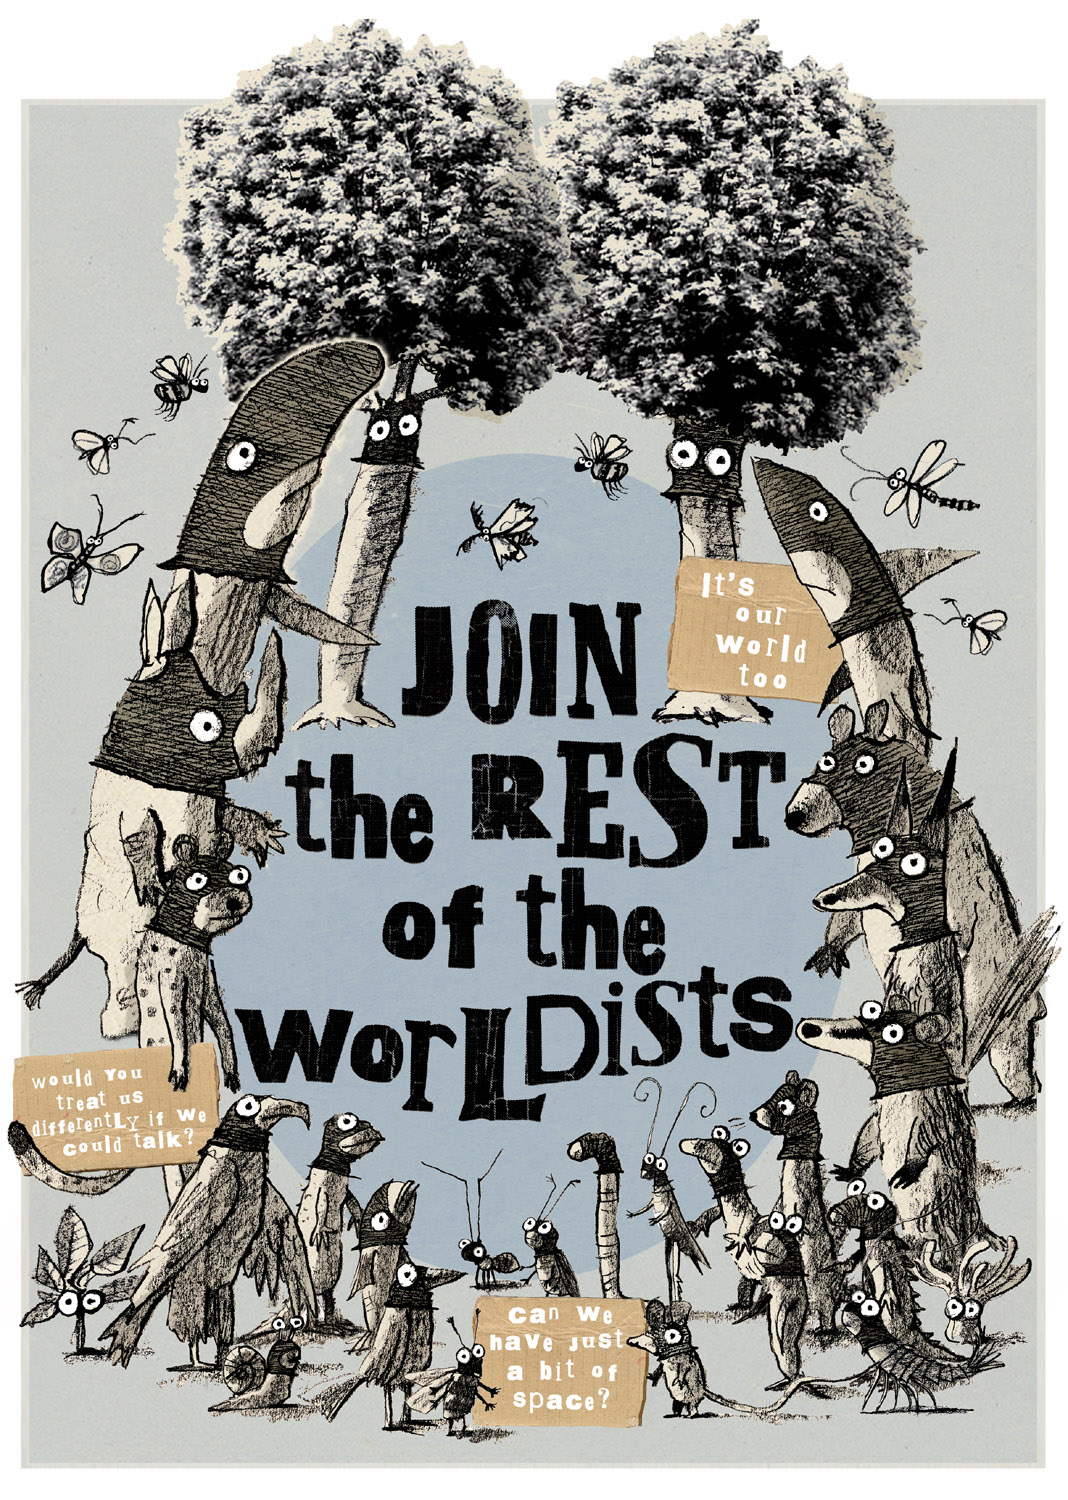 Join the Rest of the Worldists